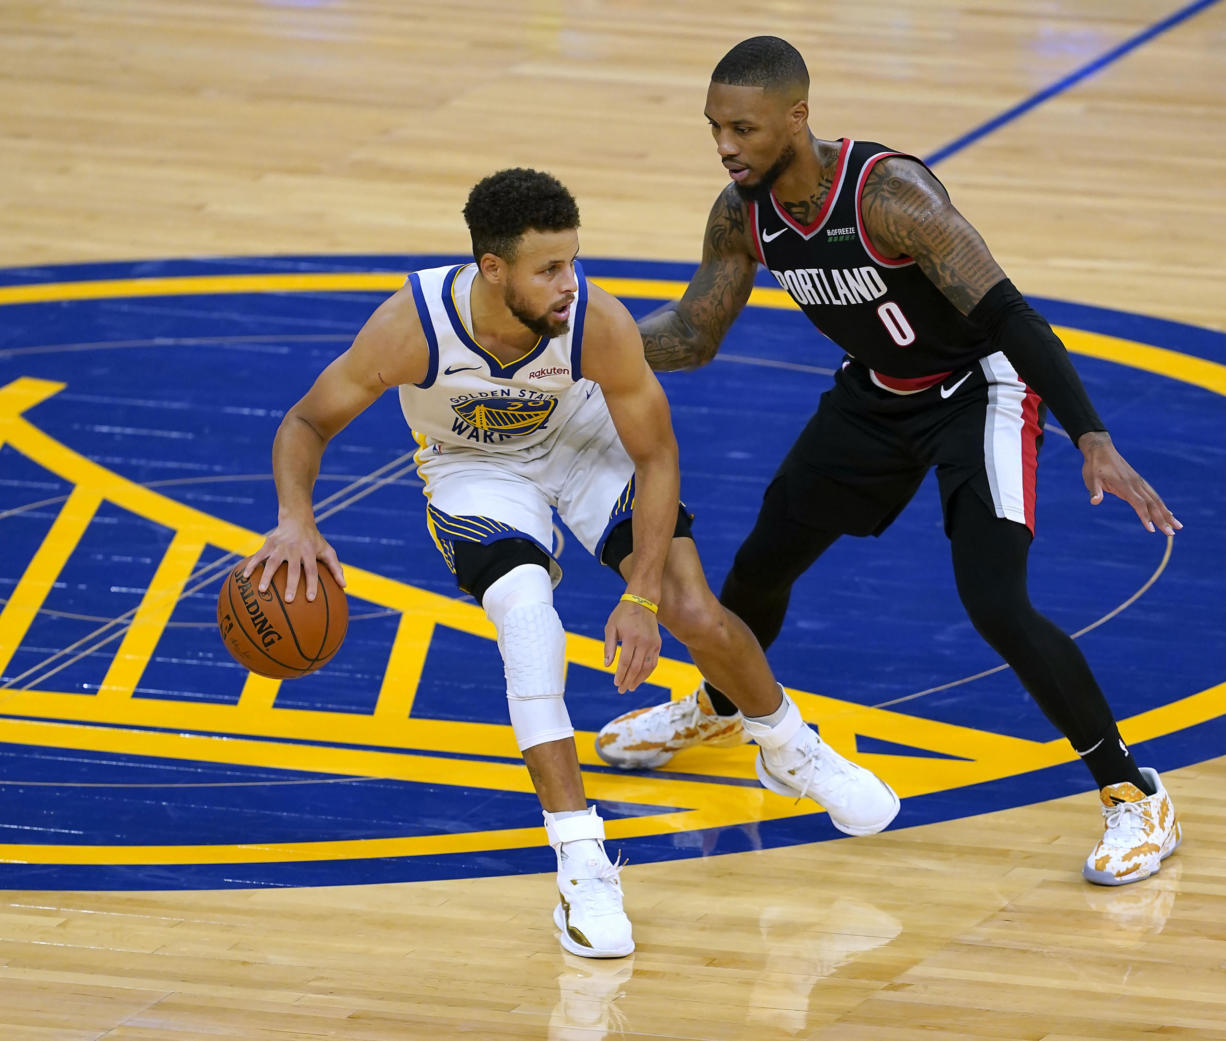 Golden State Warriors guard Stephen Curry (30) dribbles past Portland Trail Blazers guard Damian Lillard (0) during the second half of an NBA basketball game in San Francisco, Friday, Jan. 1, 2021. Portland won 123-98.